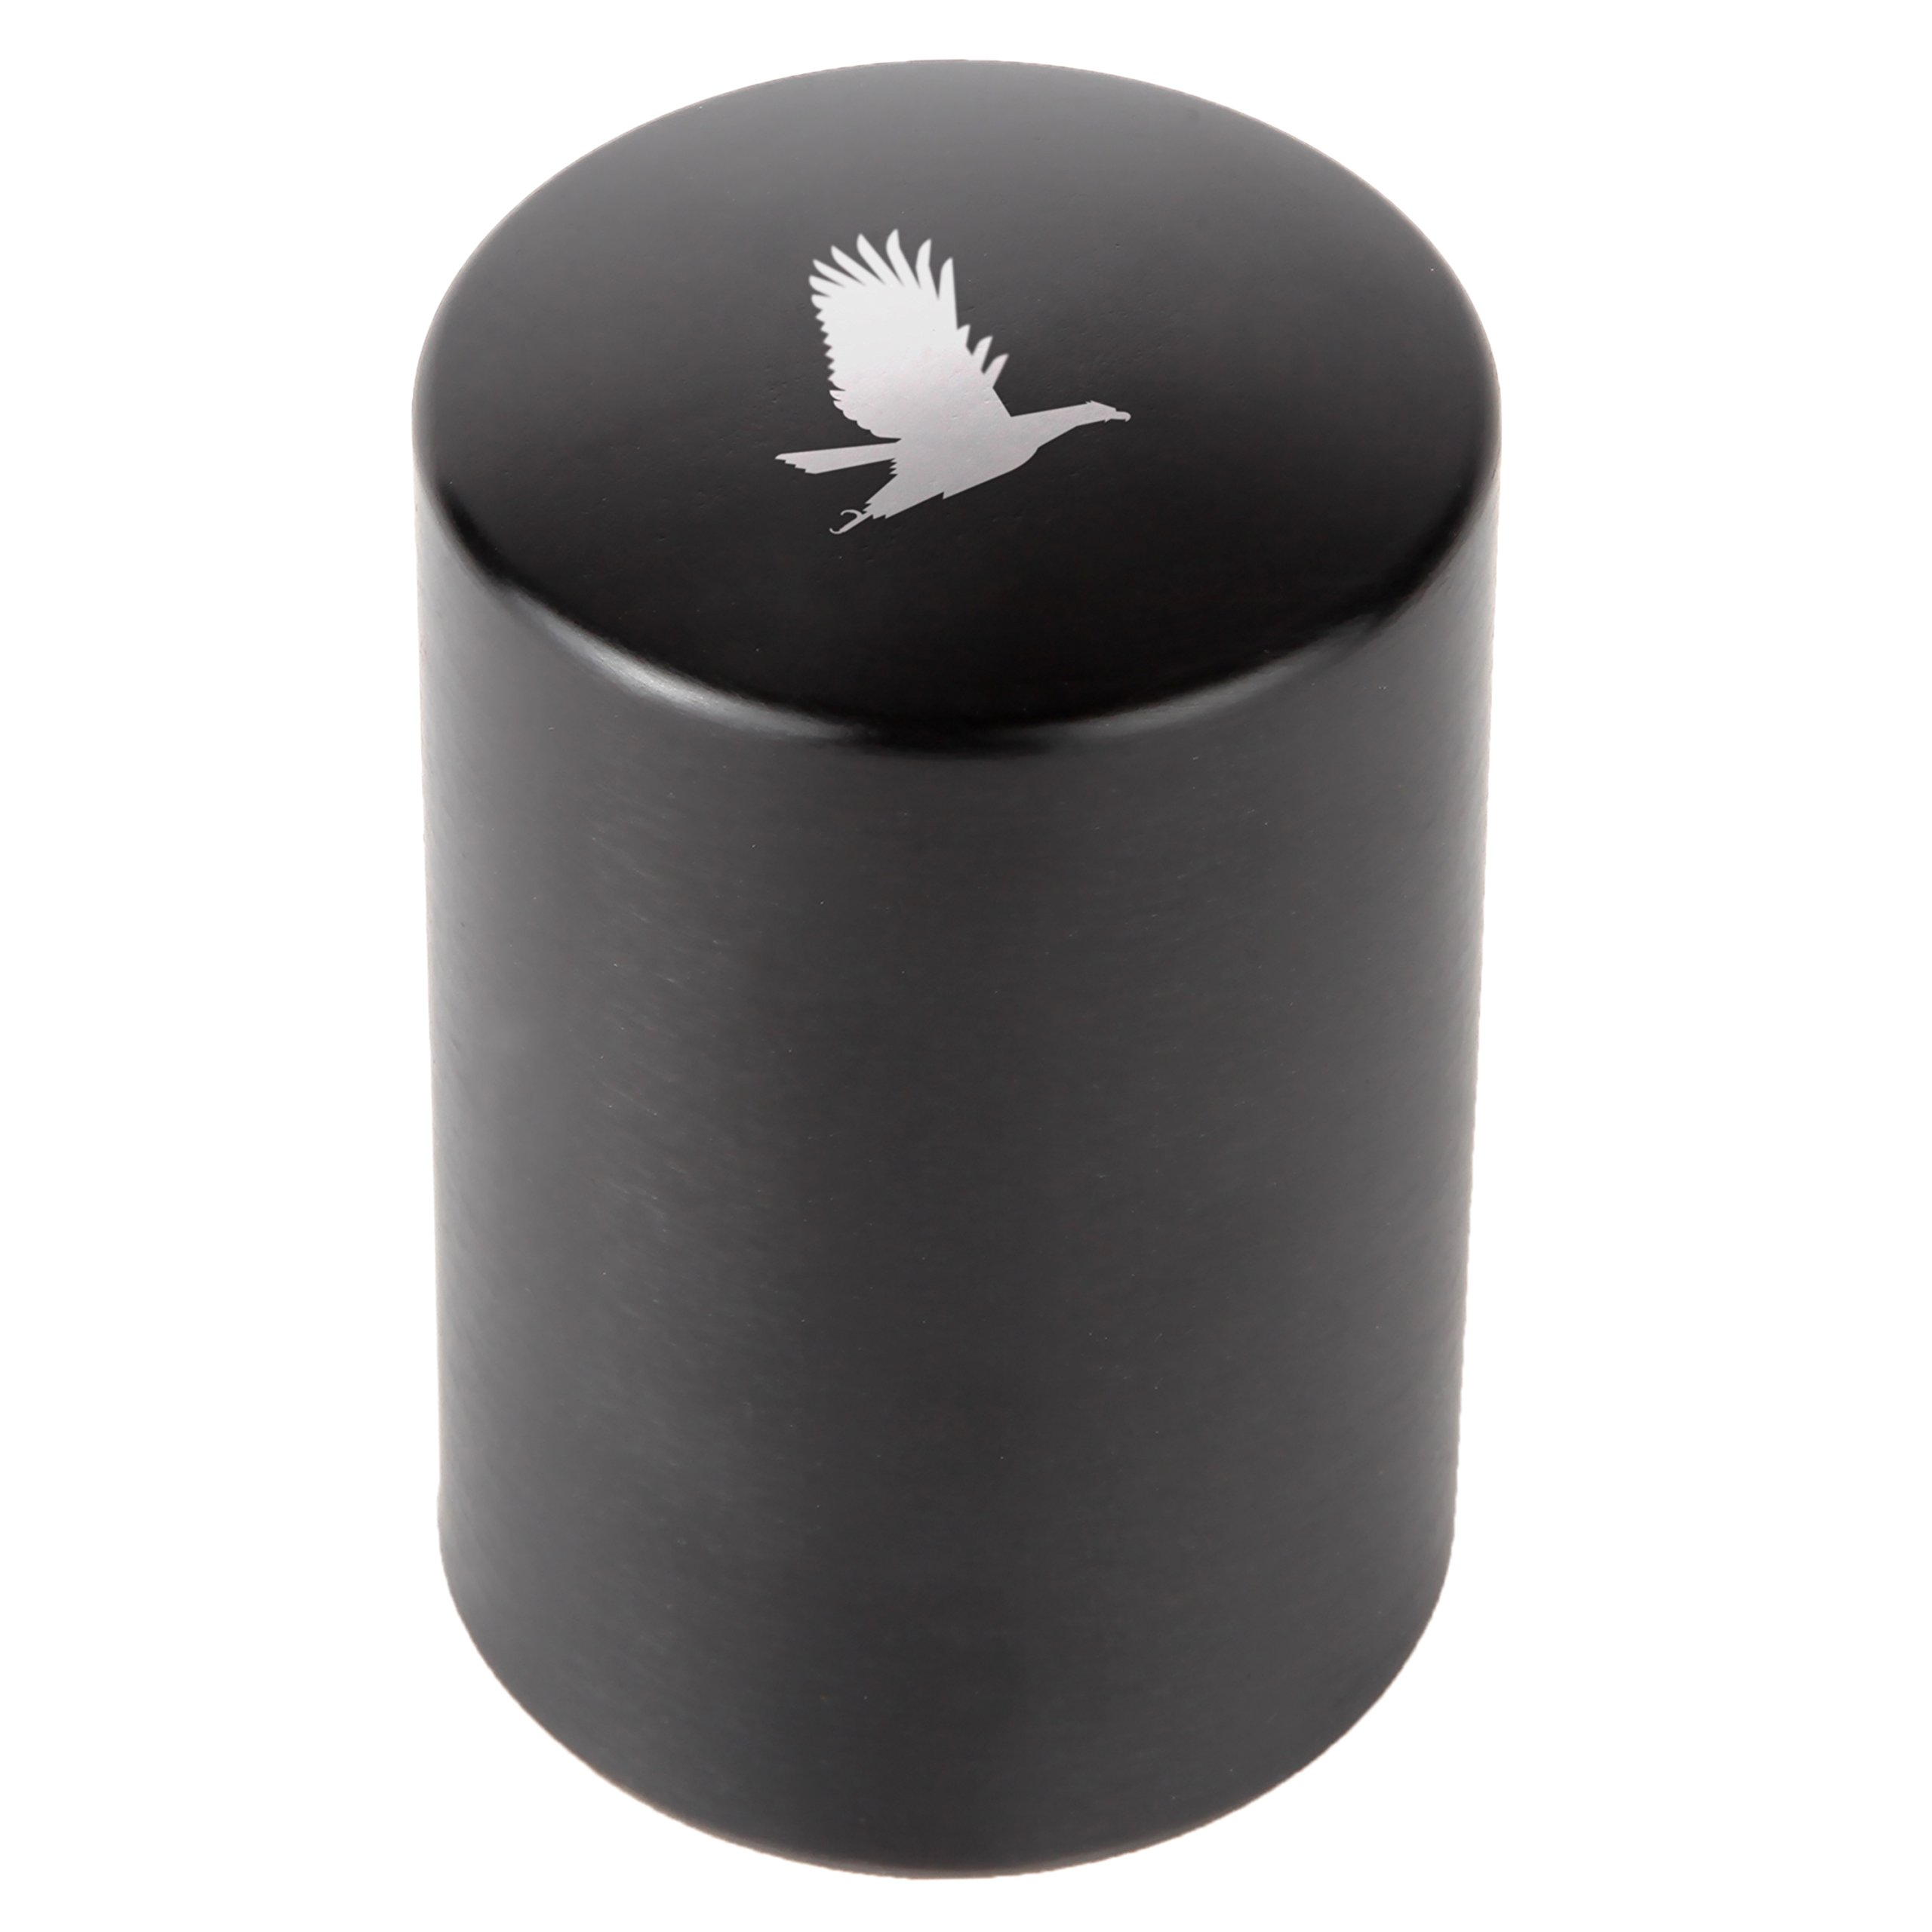 Bald Eagle Automatic Bottle Opener - Laser Etched Design - Bottle Opener With Catcher - Fast Bottle Opener For Parties, Events Or Everyday Use